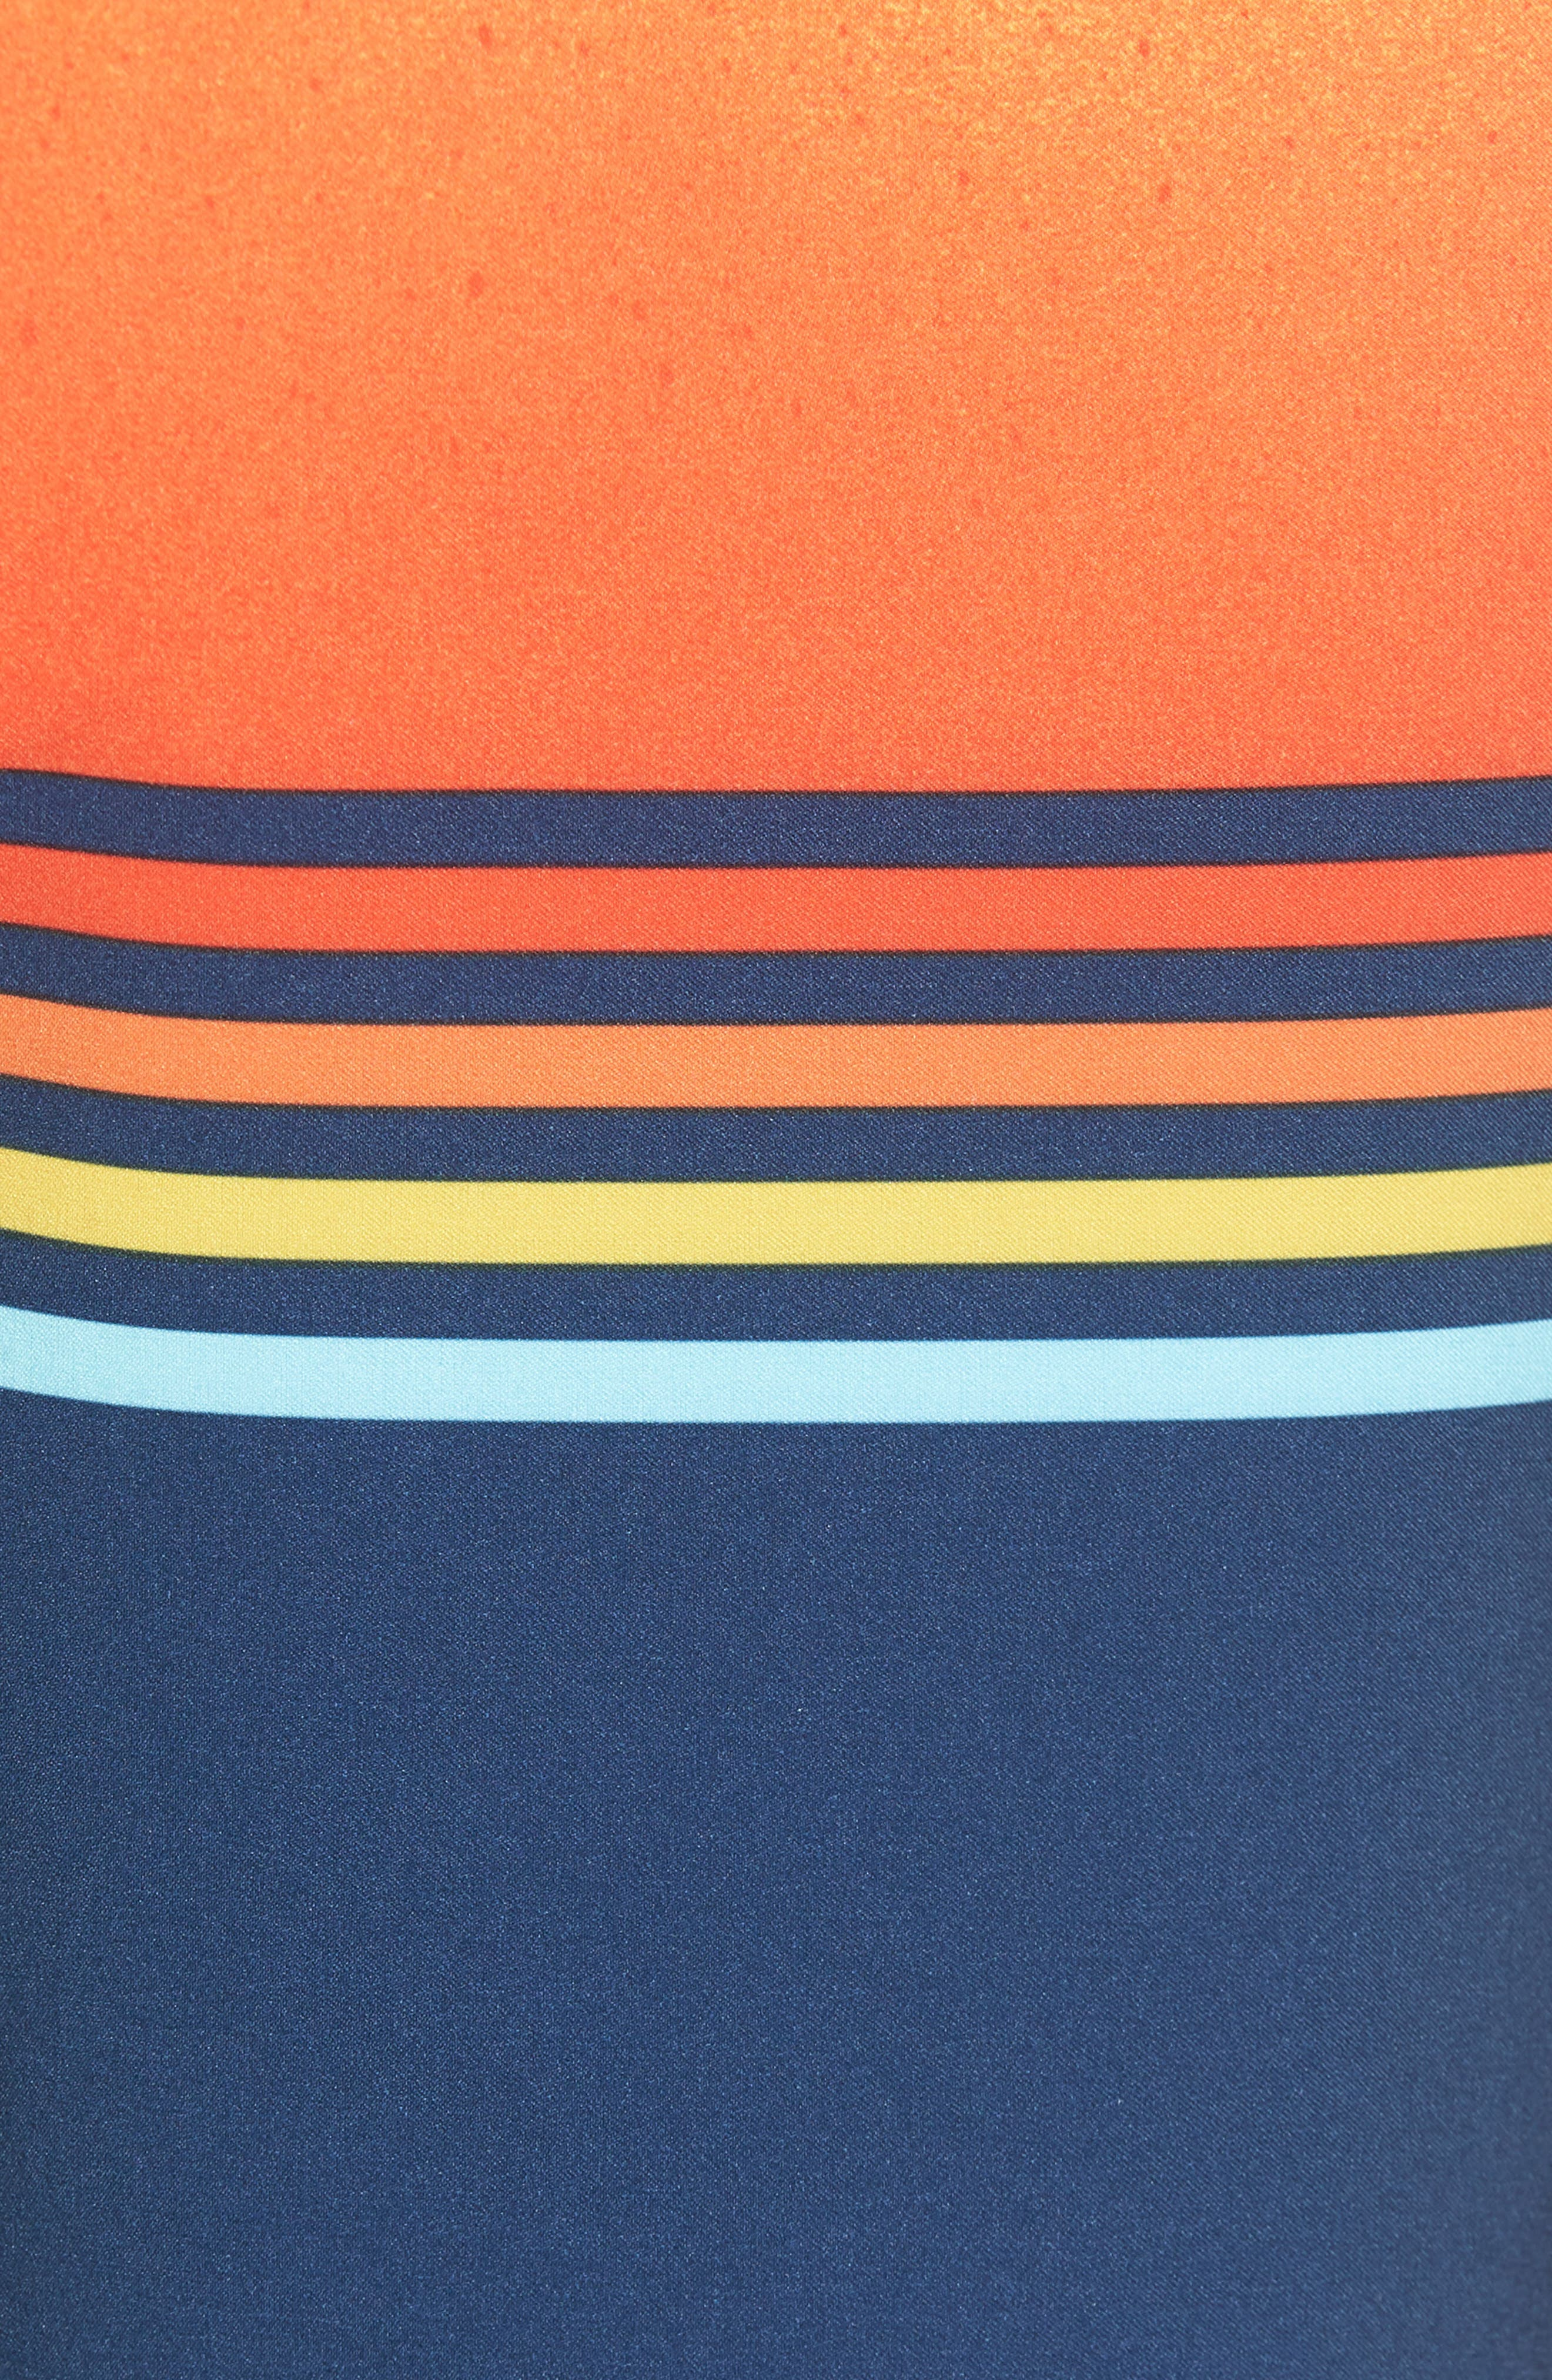 Fifty50 X Board Shorts,                             Alternate thumbnail 5, color,